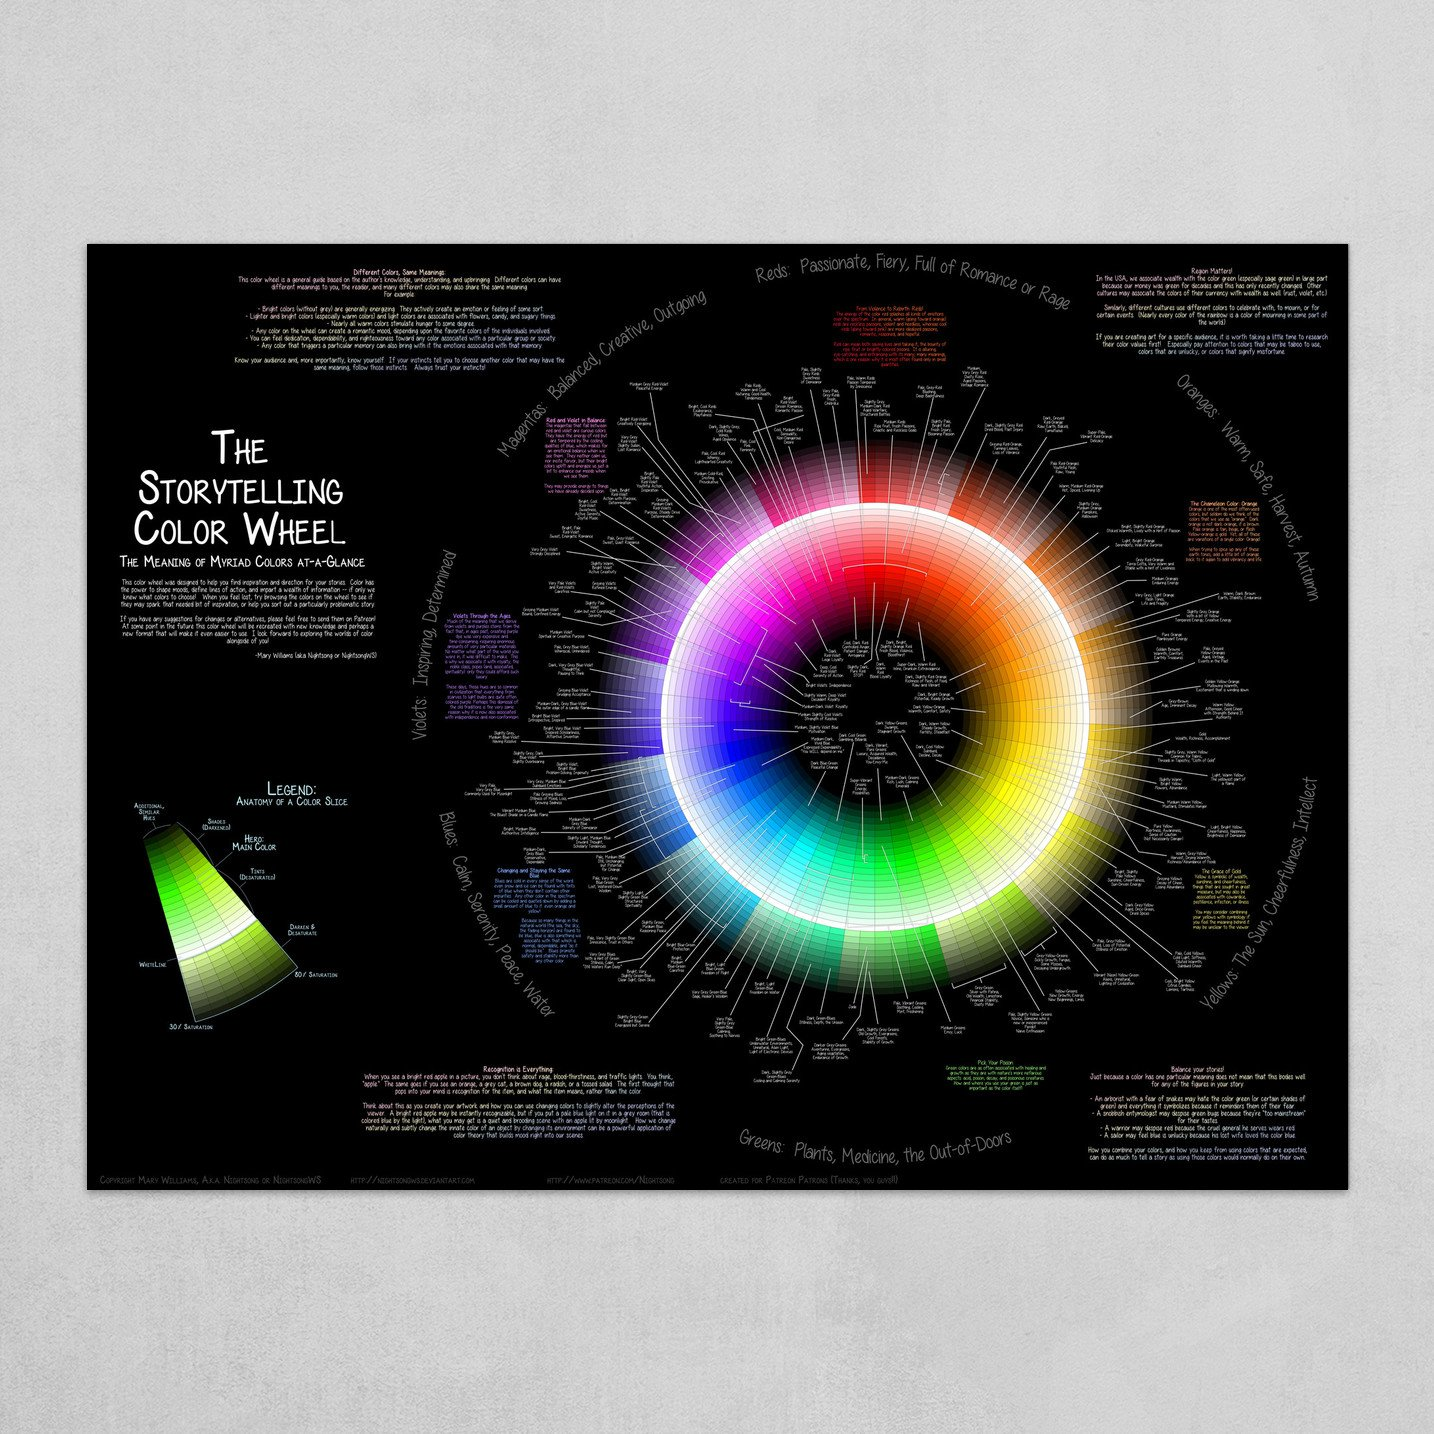 The Storytelling Color Wheel